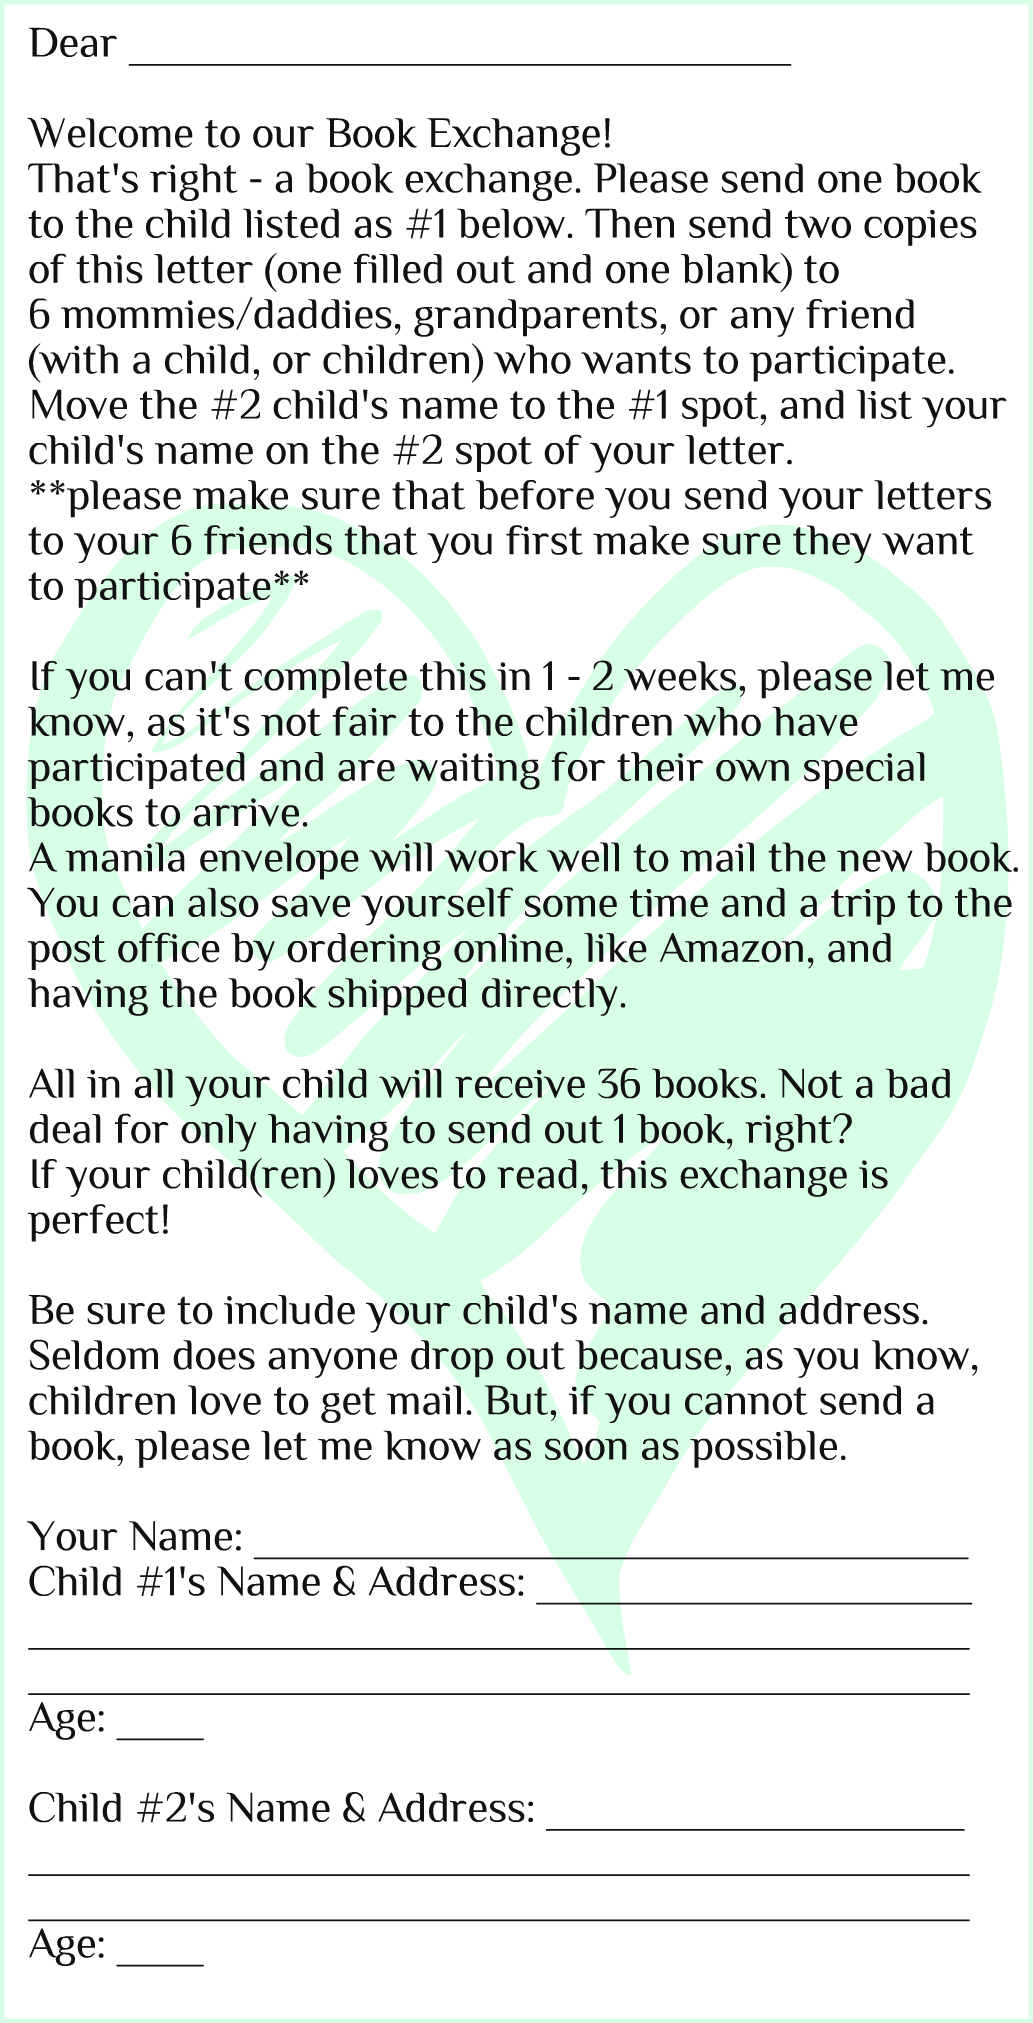 start a book exchange with family and friends (template letter